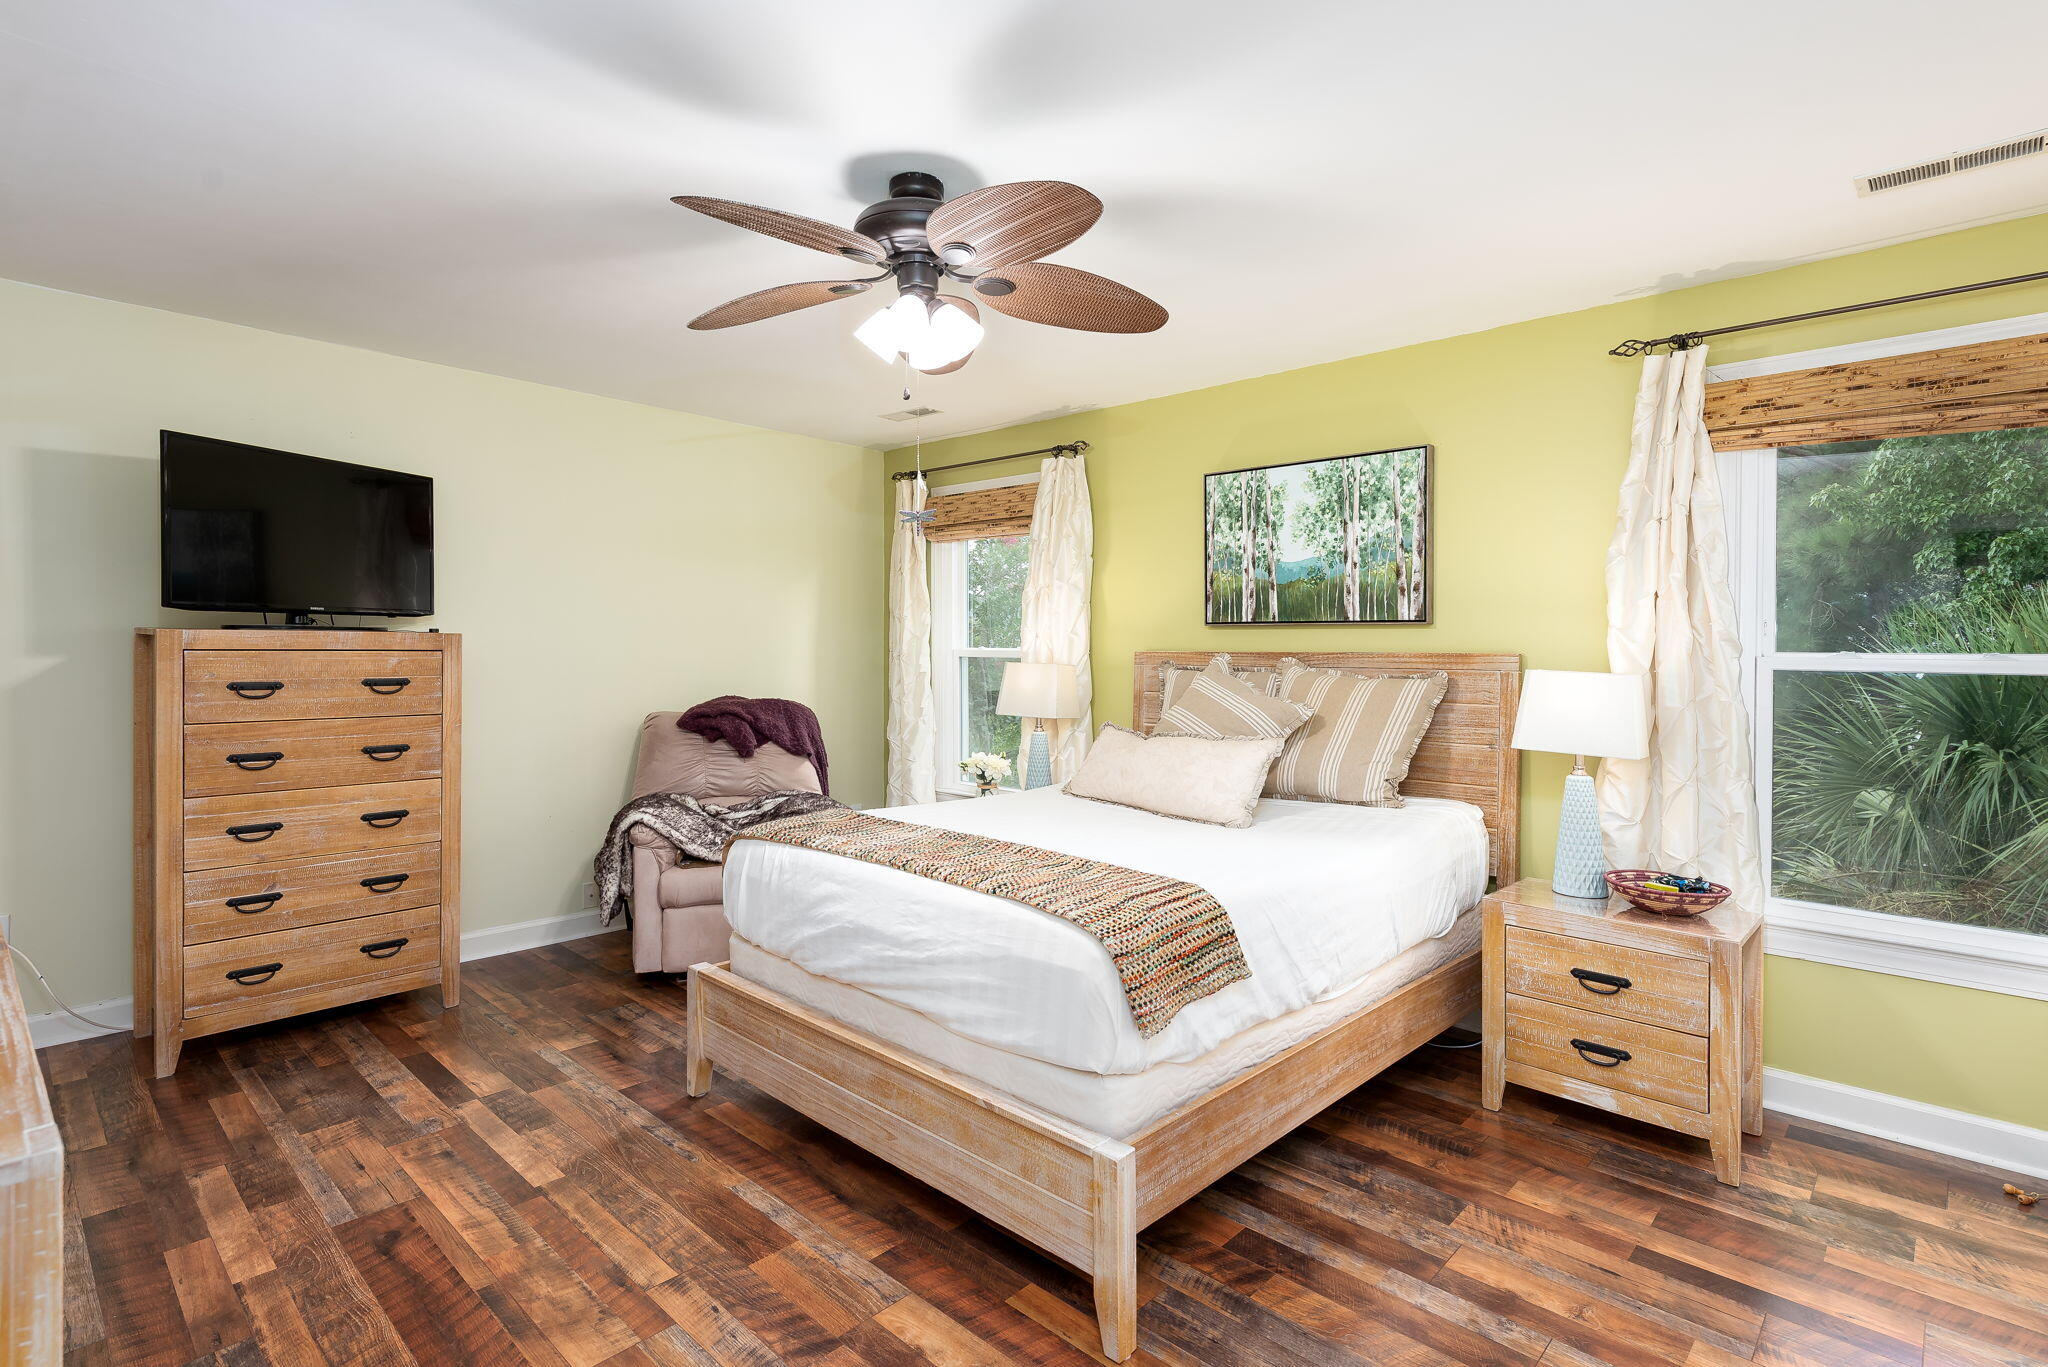 Rivertowne On The Wando Homes For Sale - 2301 Hartfords Bluff, Mount Pleasant, SC - 31